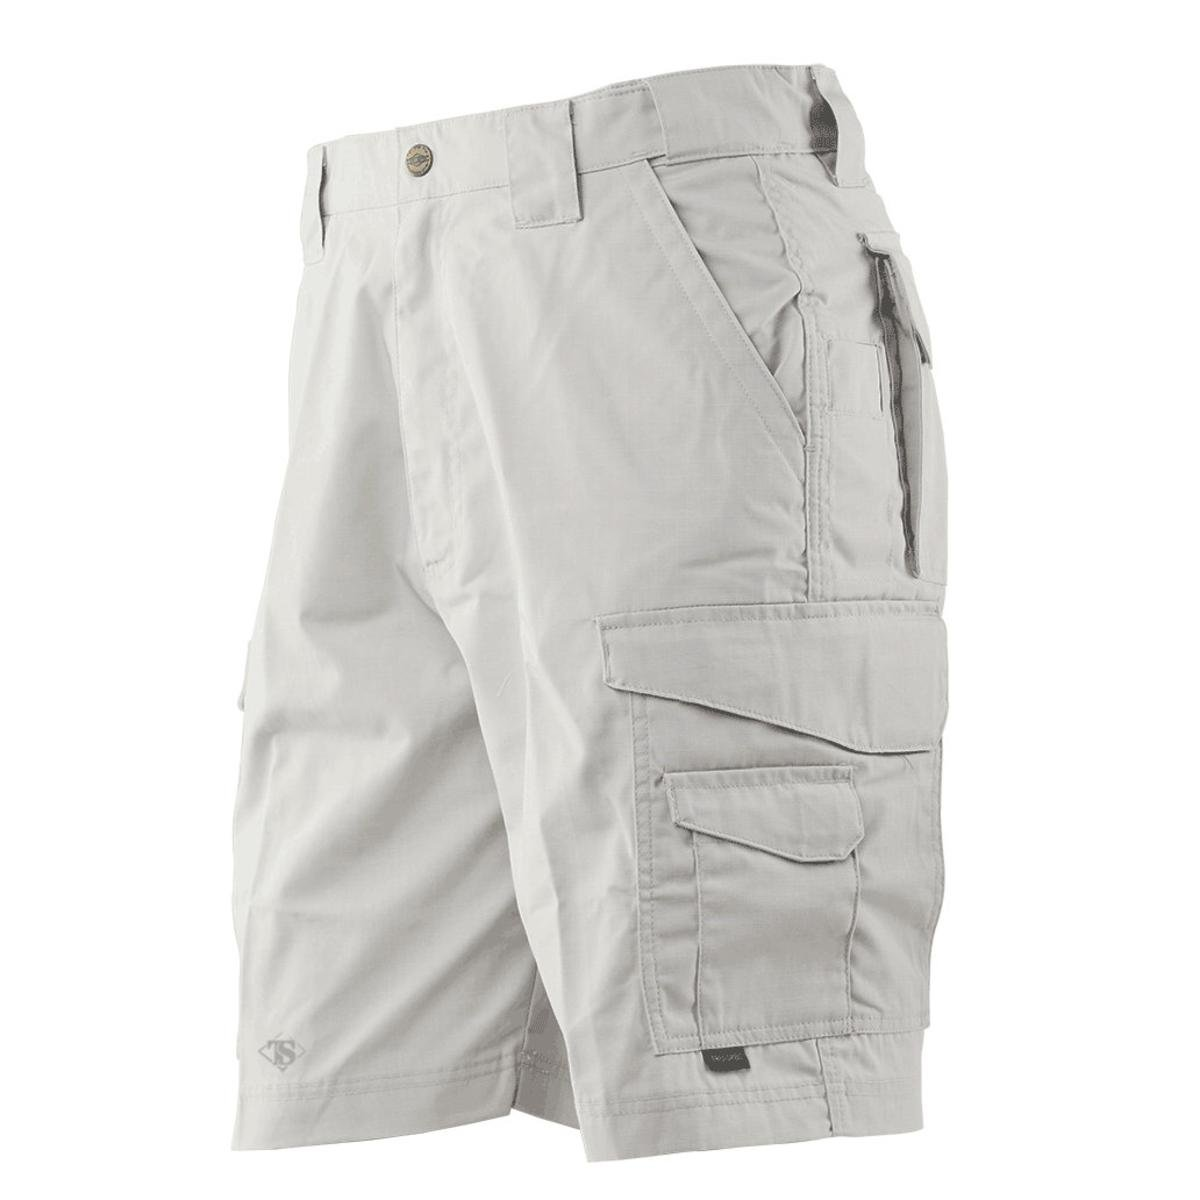 Tru-Spec Men's 24-7 Polyester Cotton Rip Stop 9-Inch Shorts Atlanco 073H21